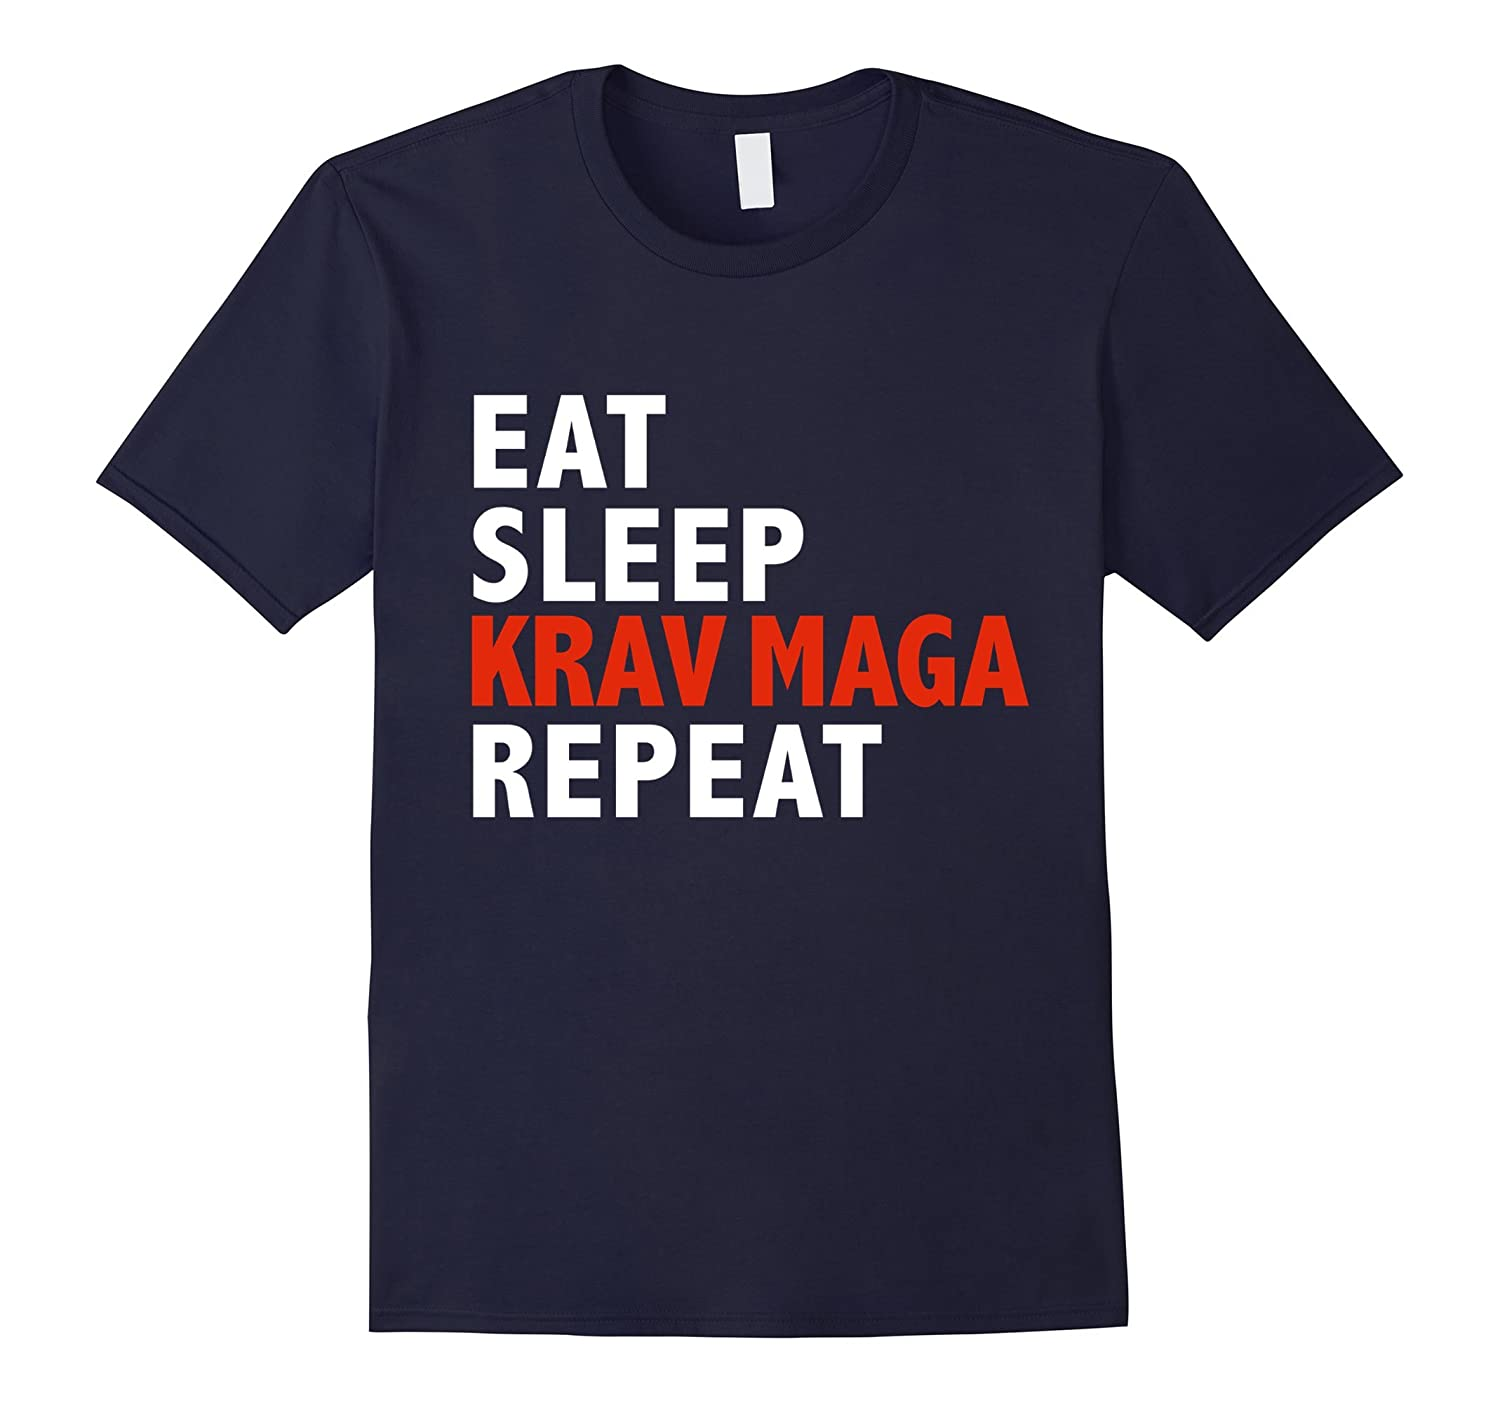 Eat Sleep Krav Maga Repeat Funny T-shirt Martial Arts Gift-TD